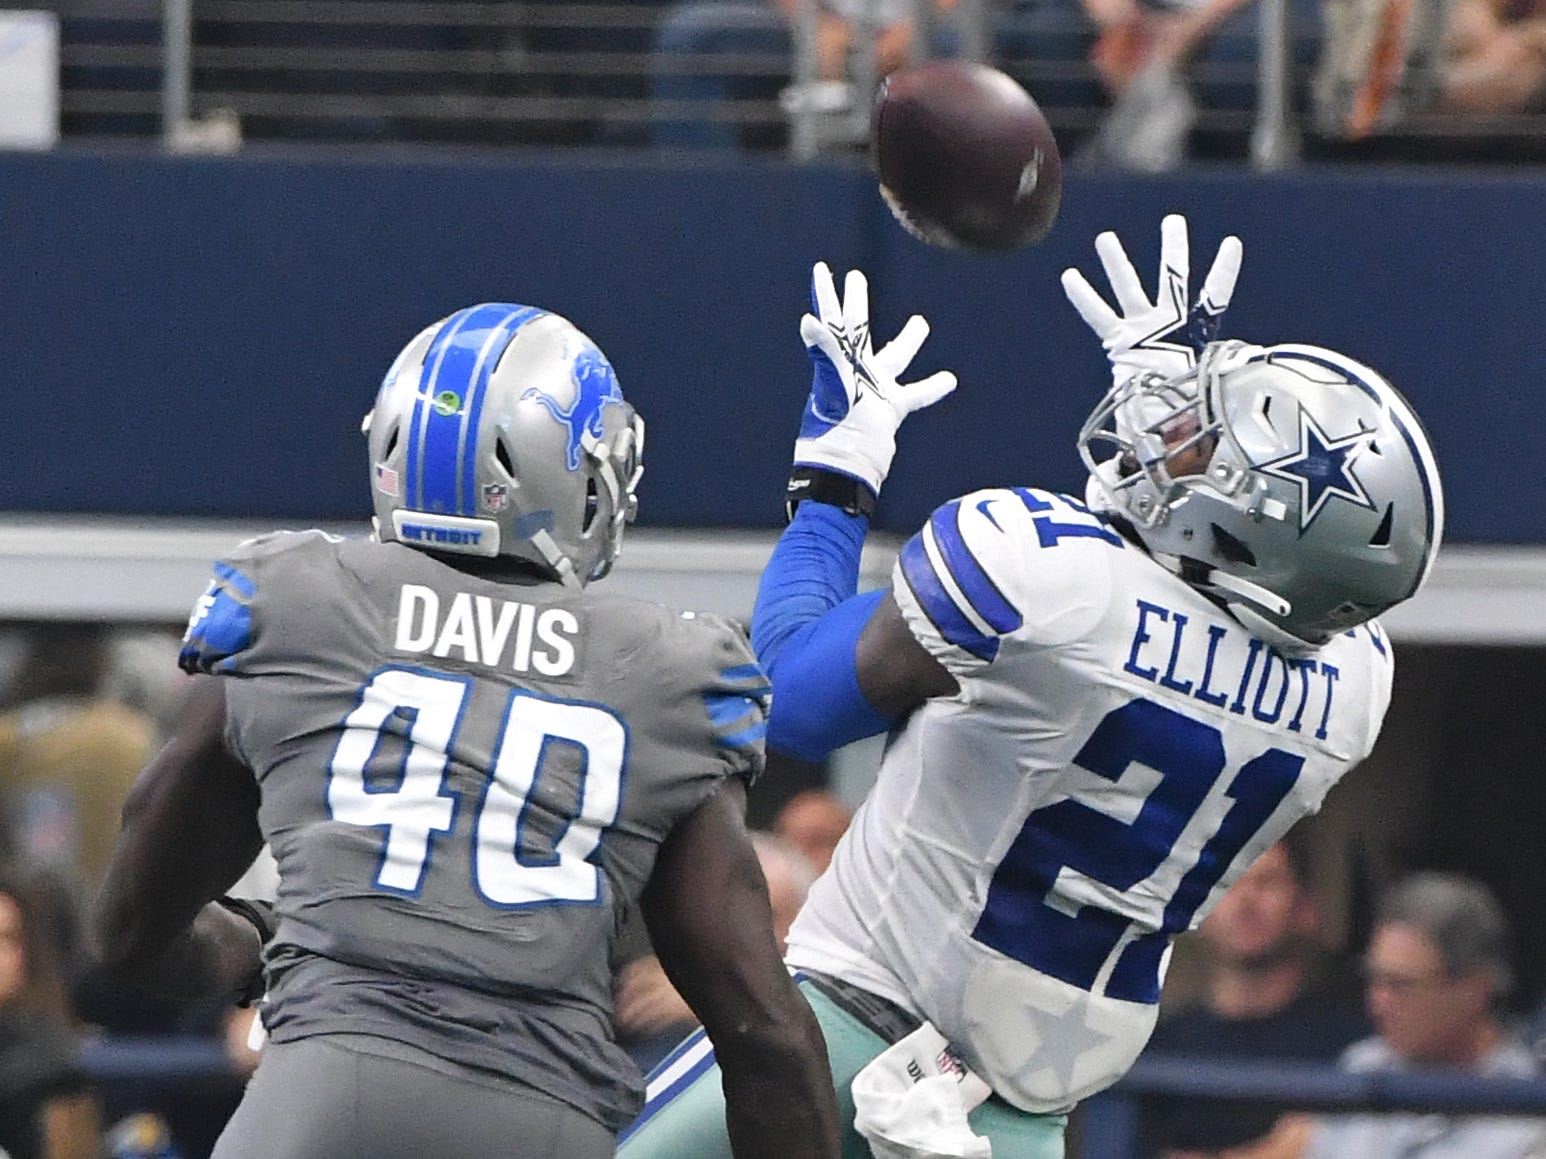 Cowboys running back Ezekiel Elliott makes a long over-the-shoulder reception to put Dallas well within game winning field goal range which is exactly what happened to end the game, 26-24 over the Detroit Lions at AT&T Stadium in Arlington, Texas on September 30, 2018.